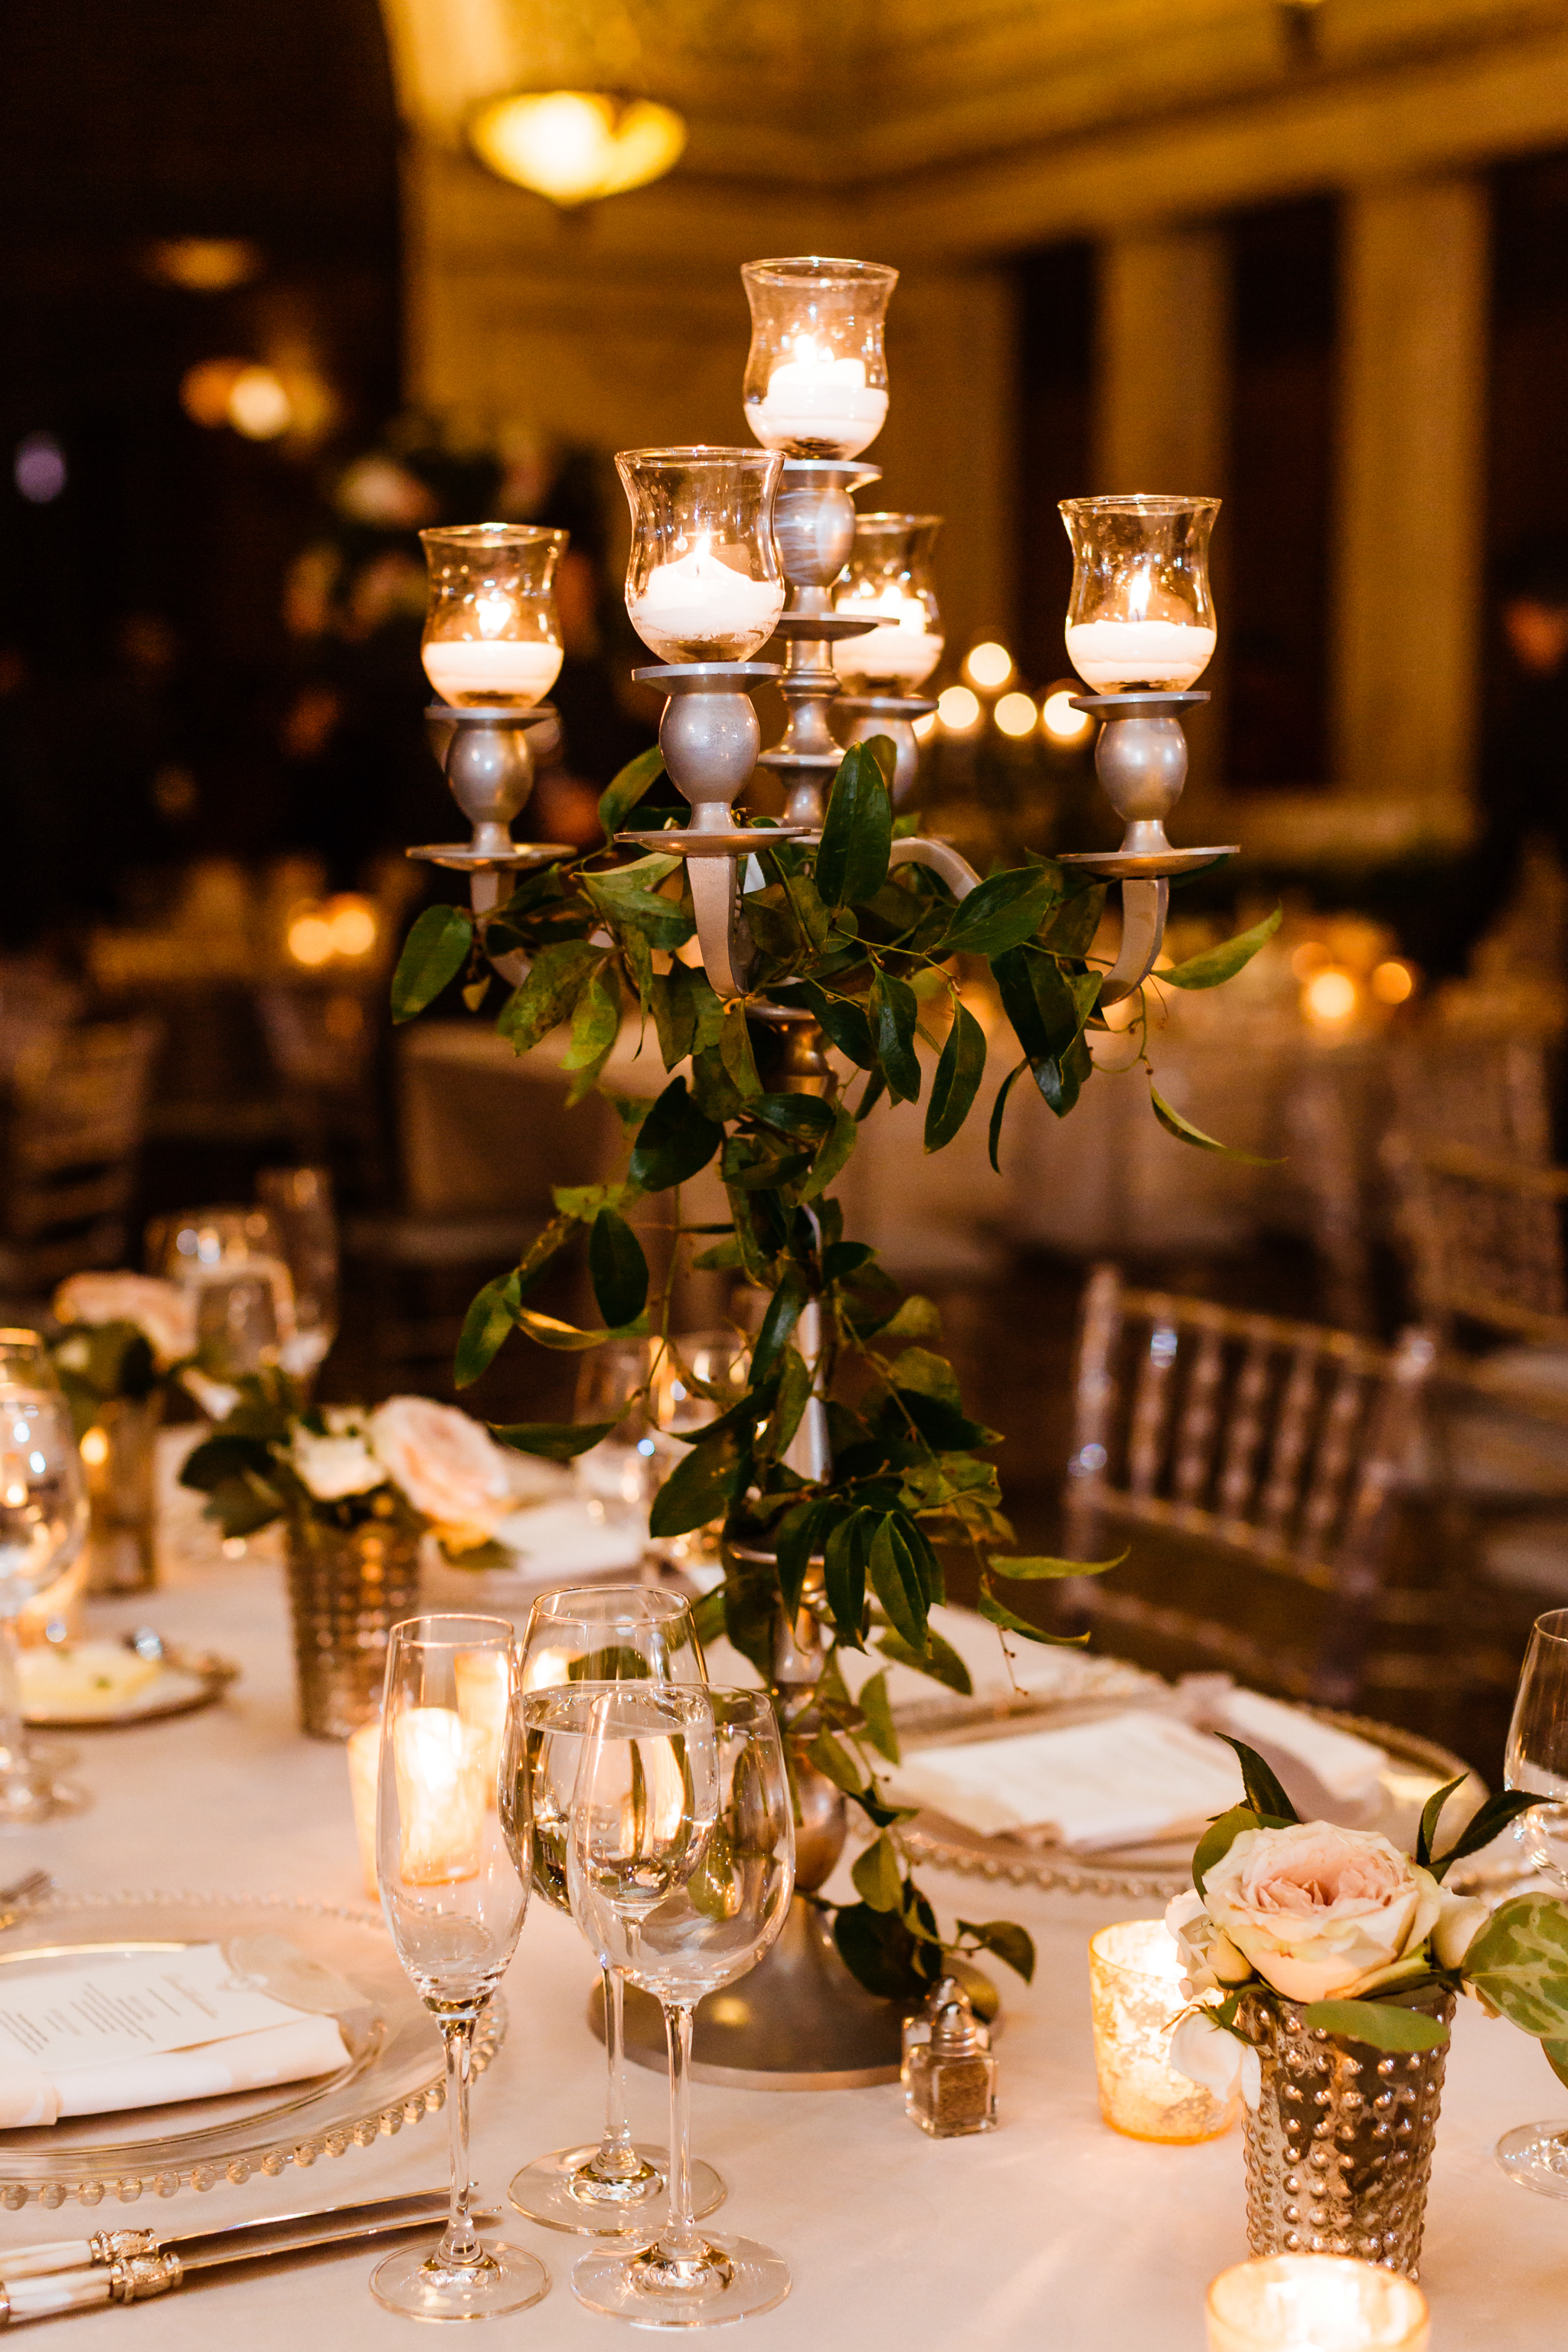 Candleabra details on tables as centerpiece